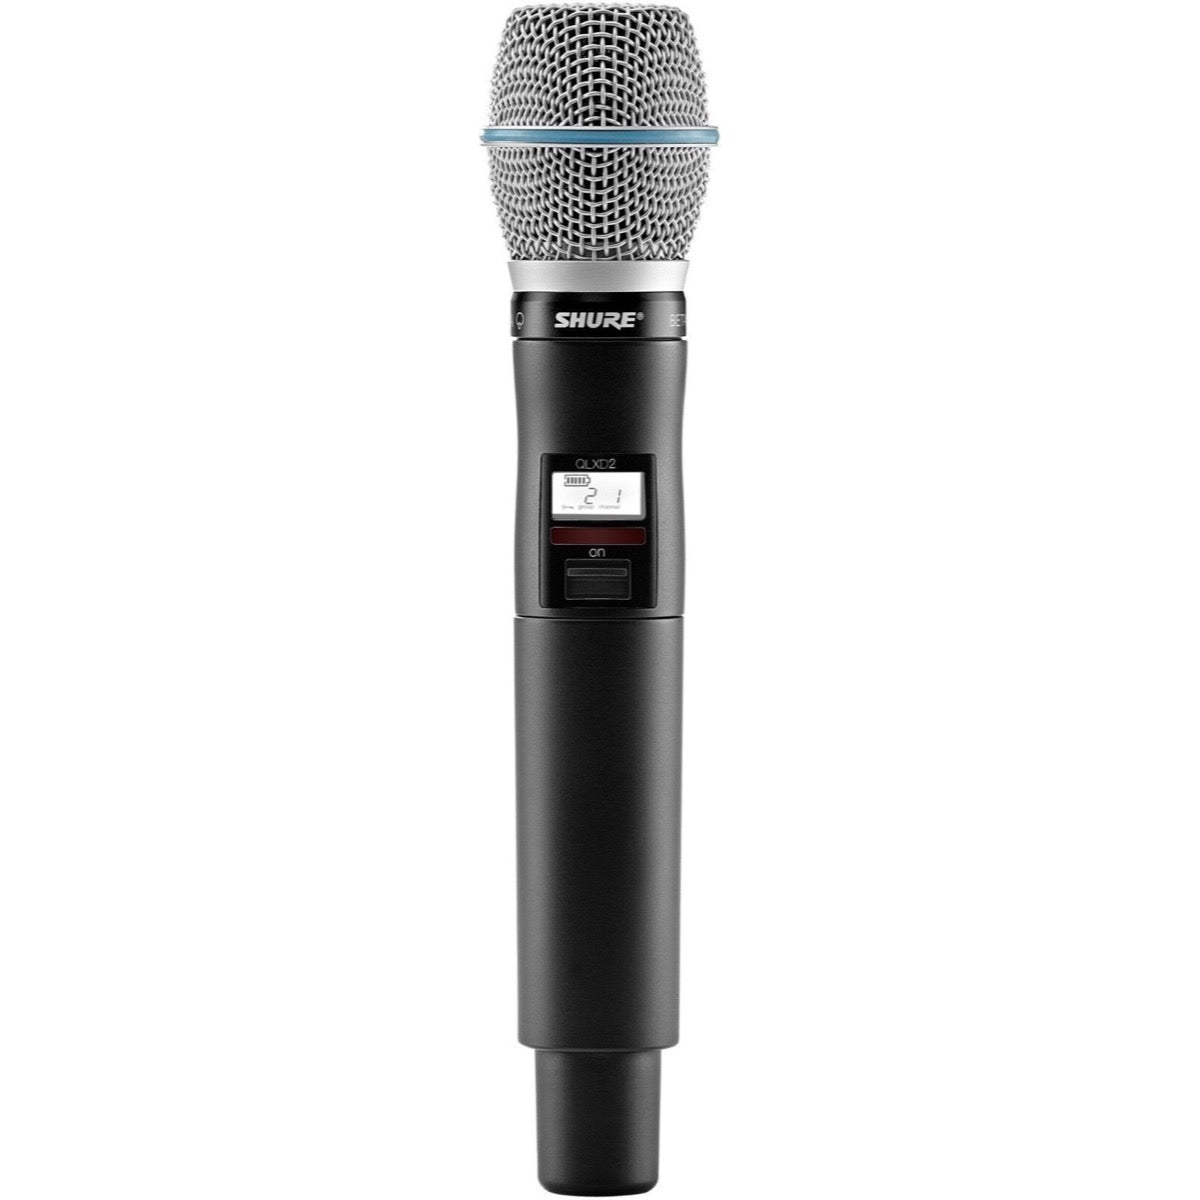 Shure QLXD24B87A Wireless System with Beta 87a Handheld Microphone Transmitter, Band V50 (174 - 216 MHz)